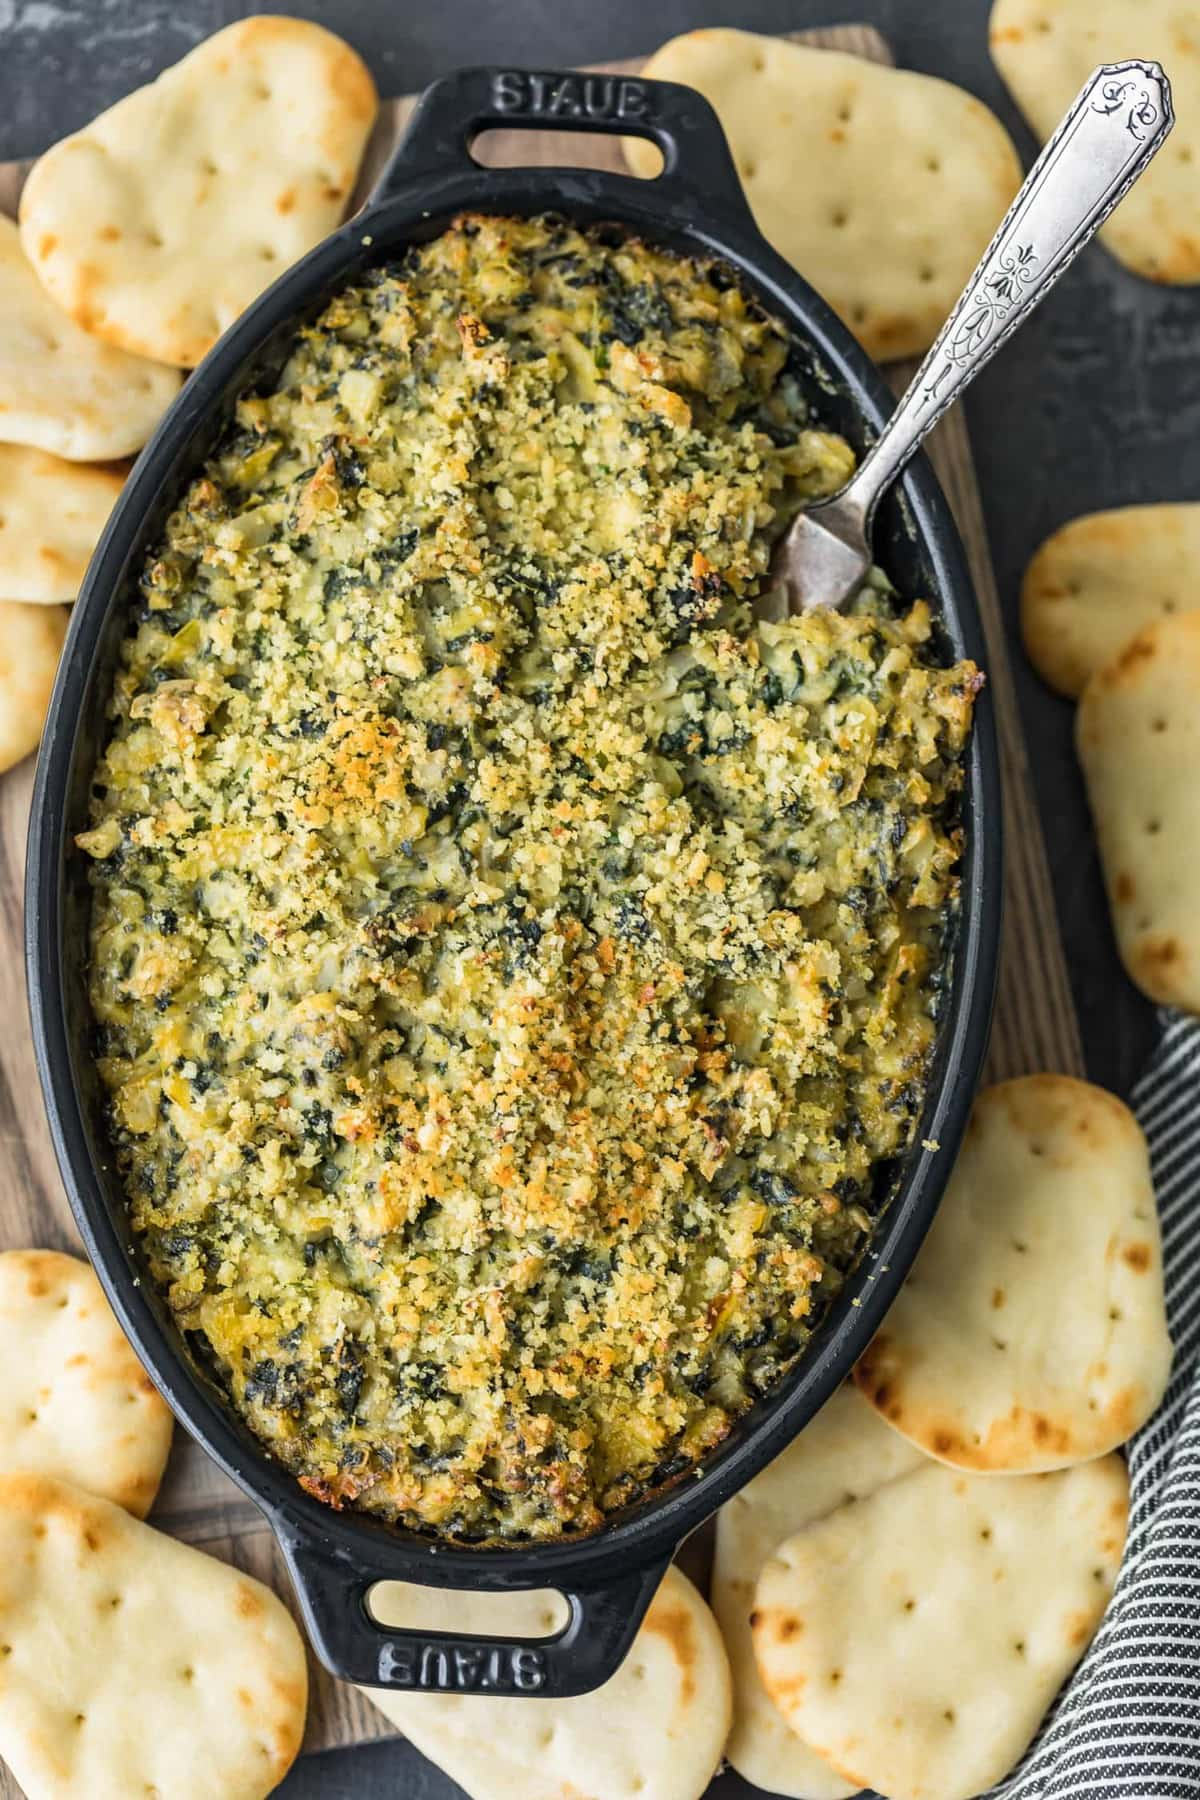 Top shot of Baked Spinach Artichoke Dip in a black dish